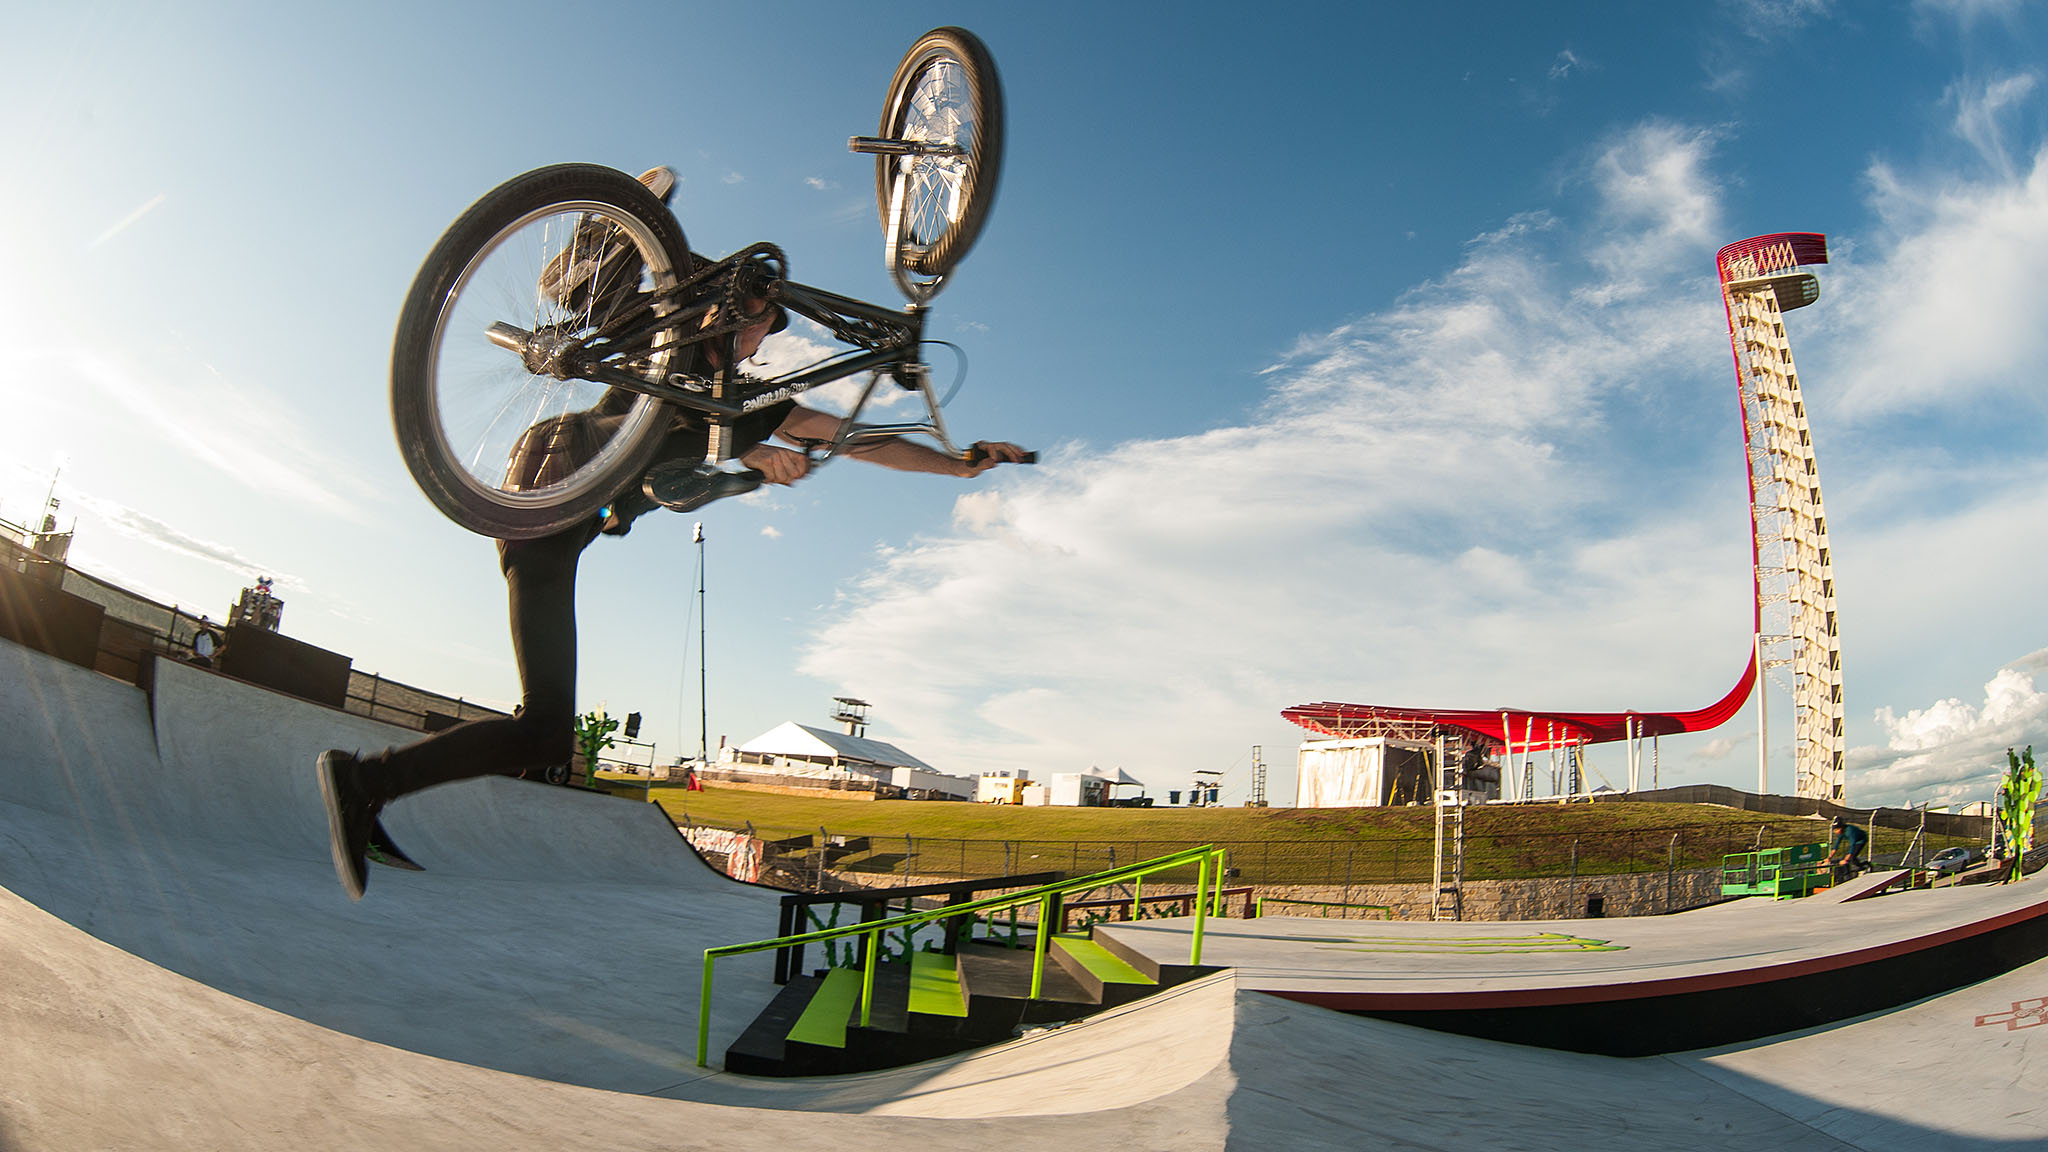 In 2010, BMX street legend Sean Burns was invited to compete in BMX Street at X Games. He gapped out of the course, over a camera man, and smoked a cigarette when the dust settled. He also made it onto SportsCenter for his antics. This year at X Games Austin 2016, Burns is a judge who doubles as the world's most adept fastplanter on the BMX Street course.